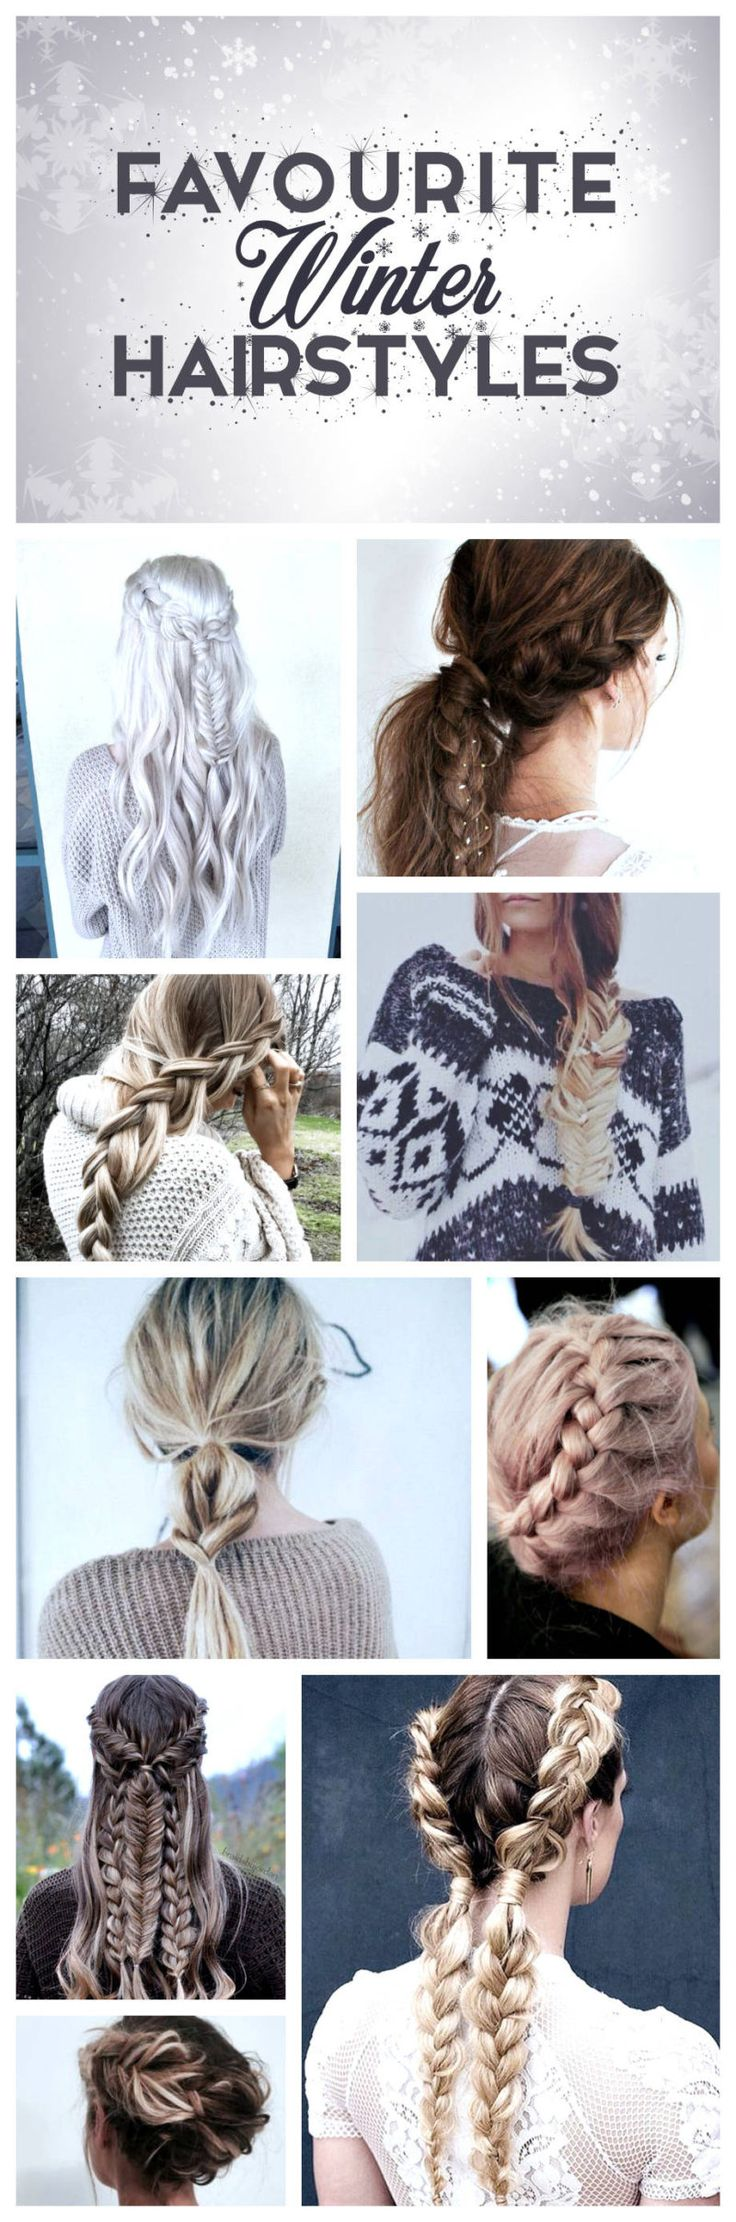 Favourite Braided Hairstyles for Winter❄️